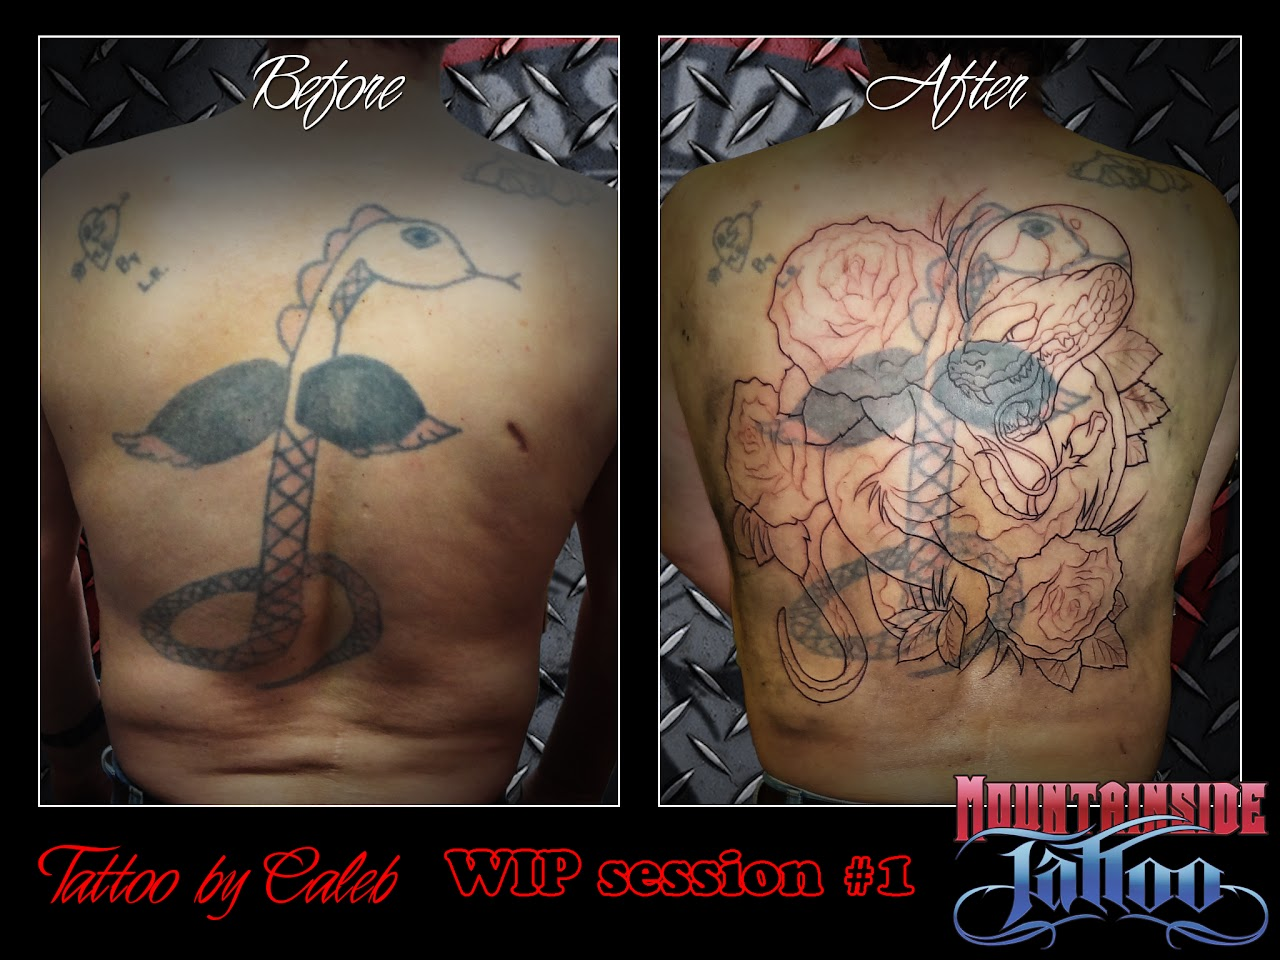 Mountainside tattoo and piercing cover up tattoos for Tattoo parlors in vermont